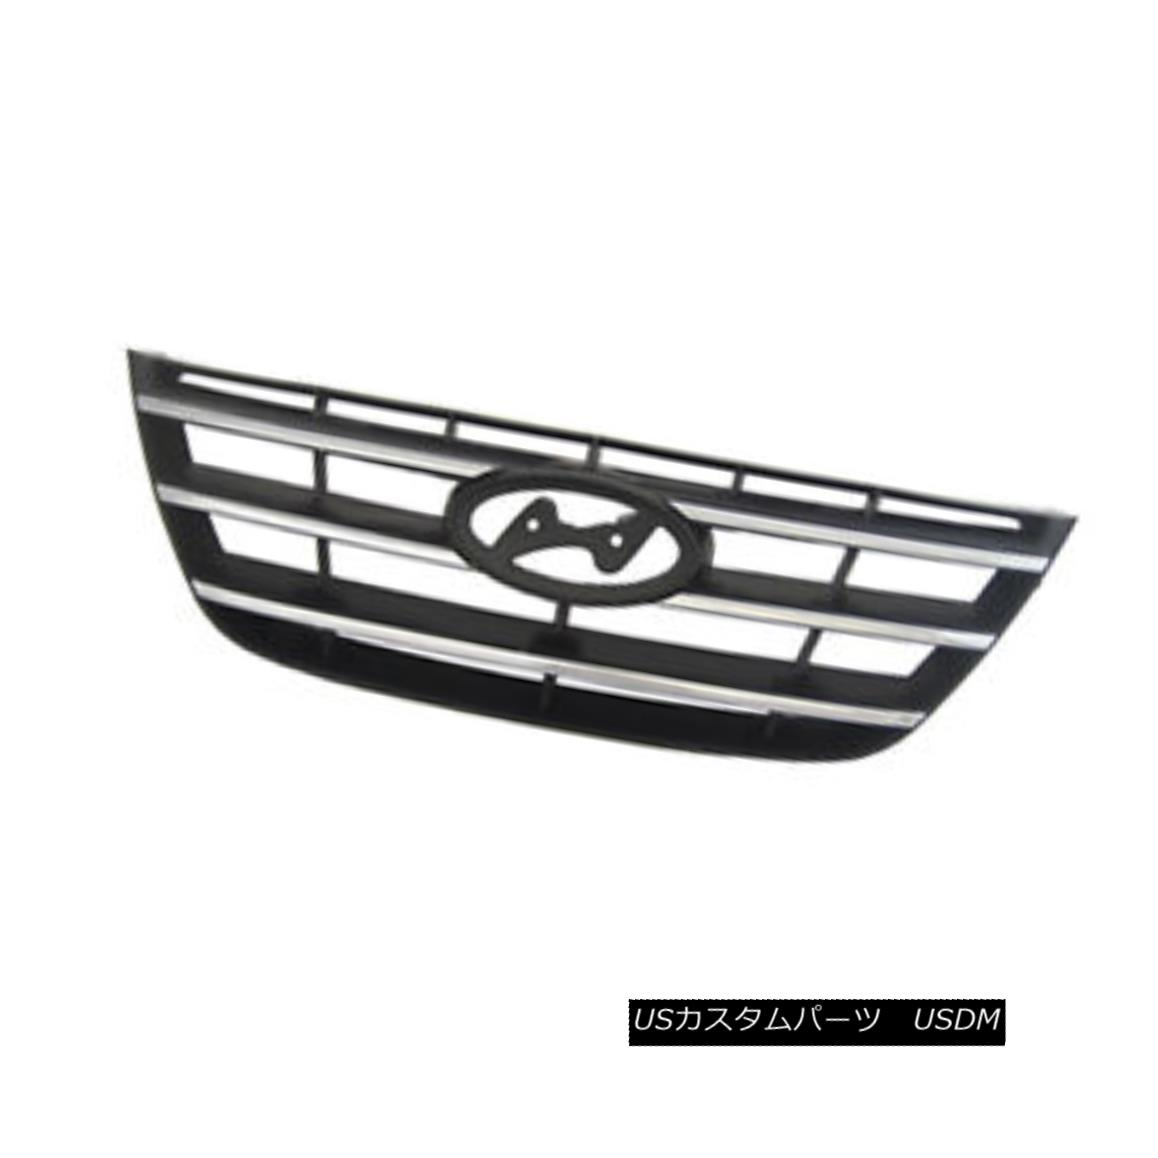 グリル New Replacement Grille for 2009 2010 Hyundai Sonata GLS LTD SE 2009年現代ソナタGLS LTD SEの新しい交換用グリル